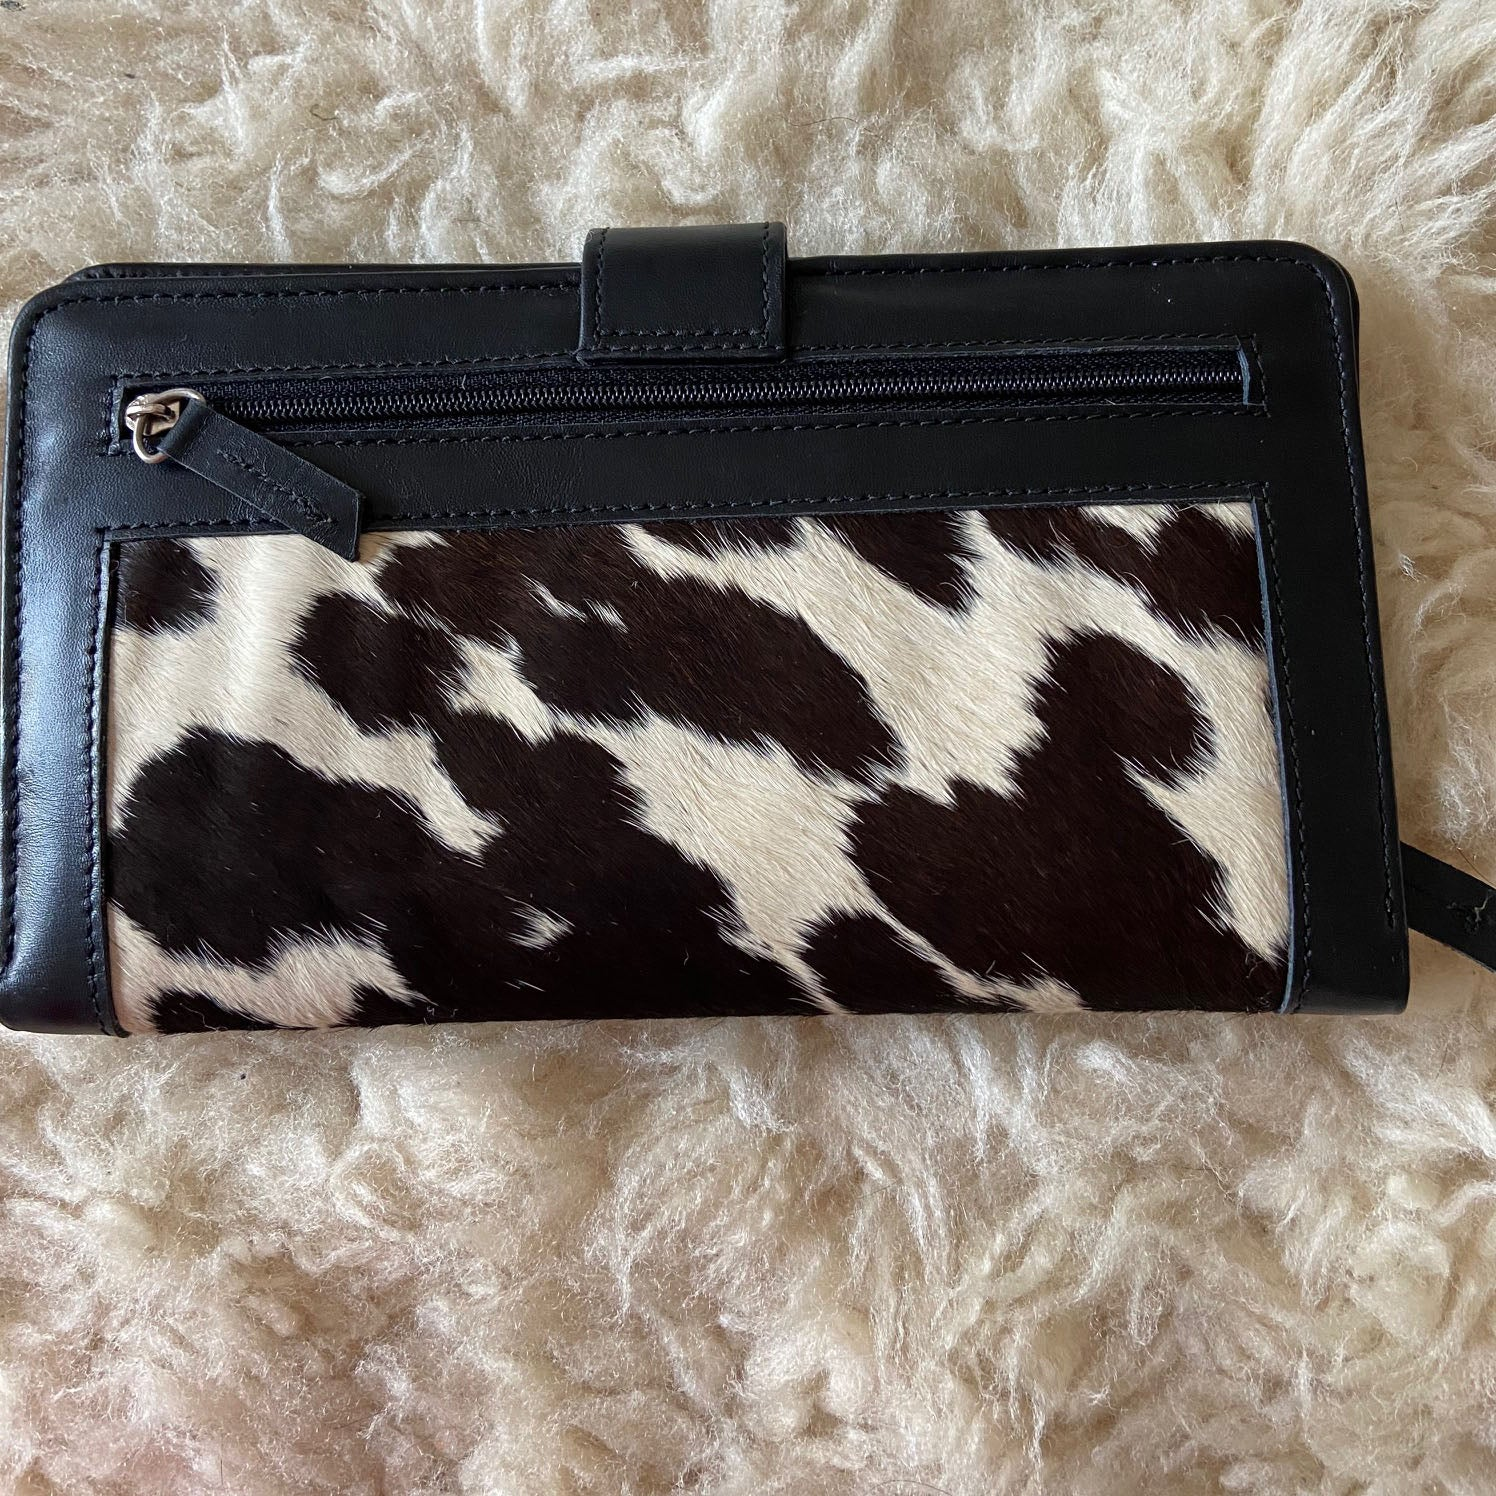 The Brockhampton Leather Cowhide Wallet by Juice - Black